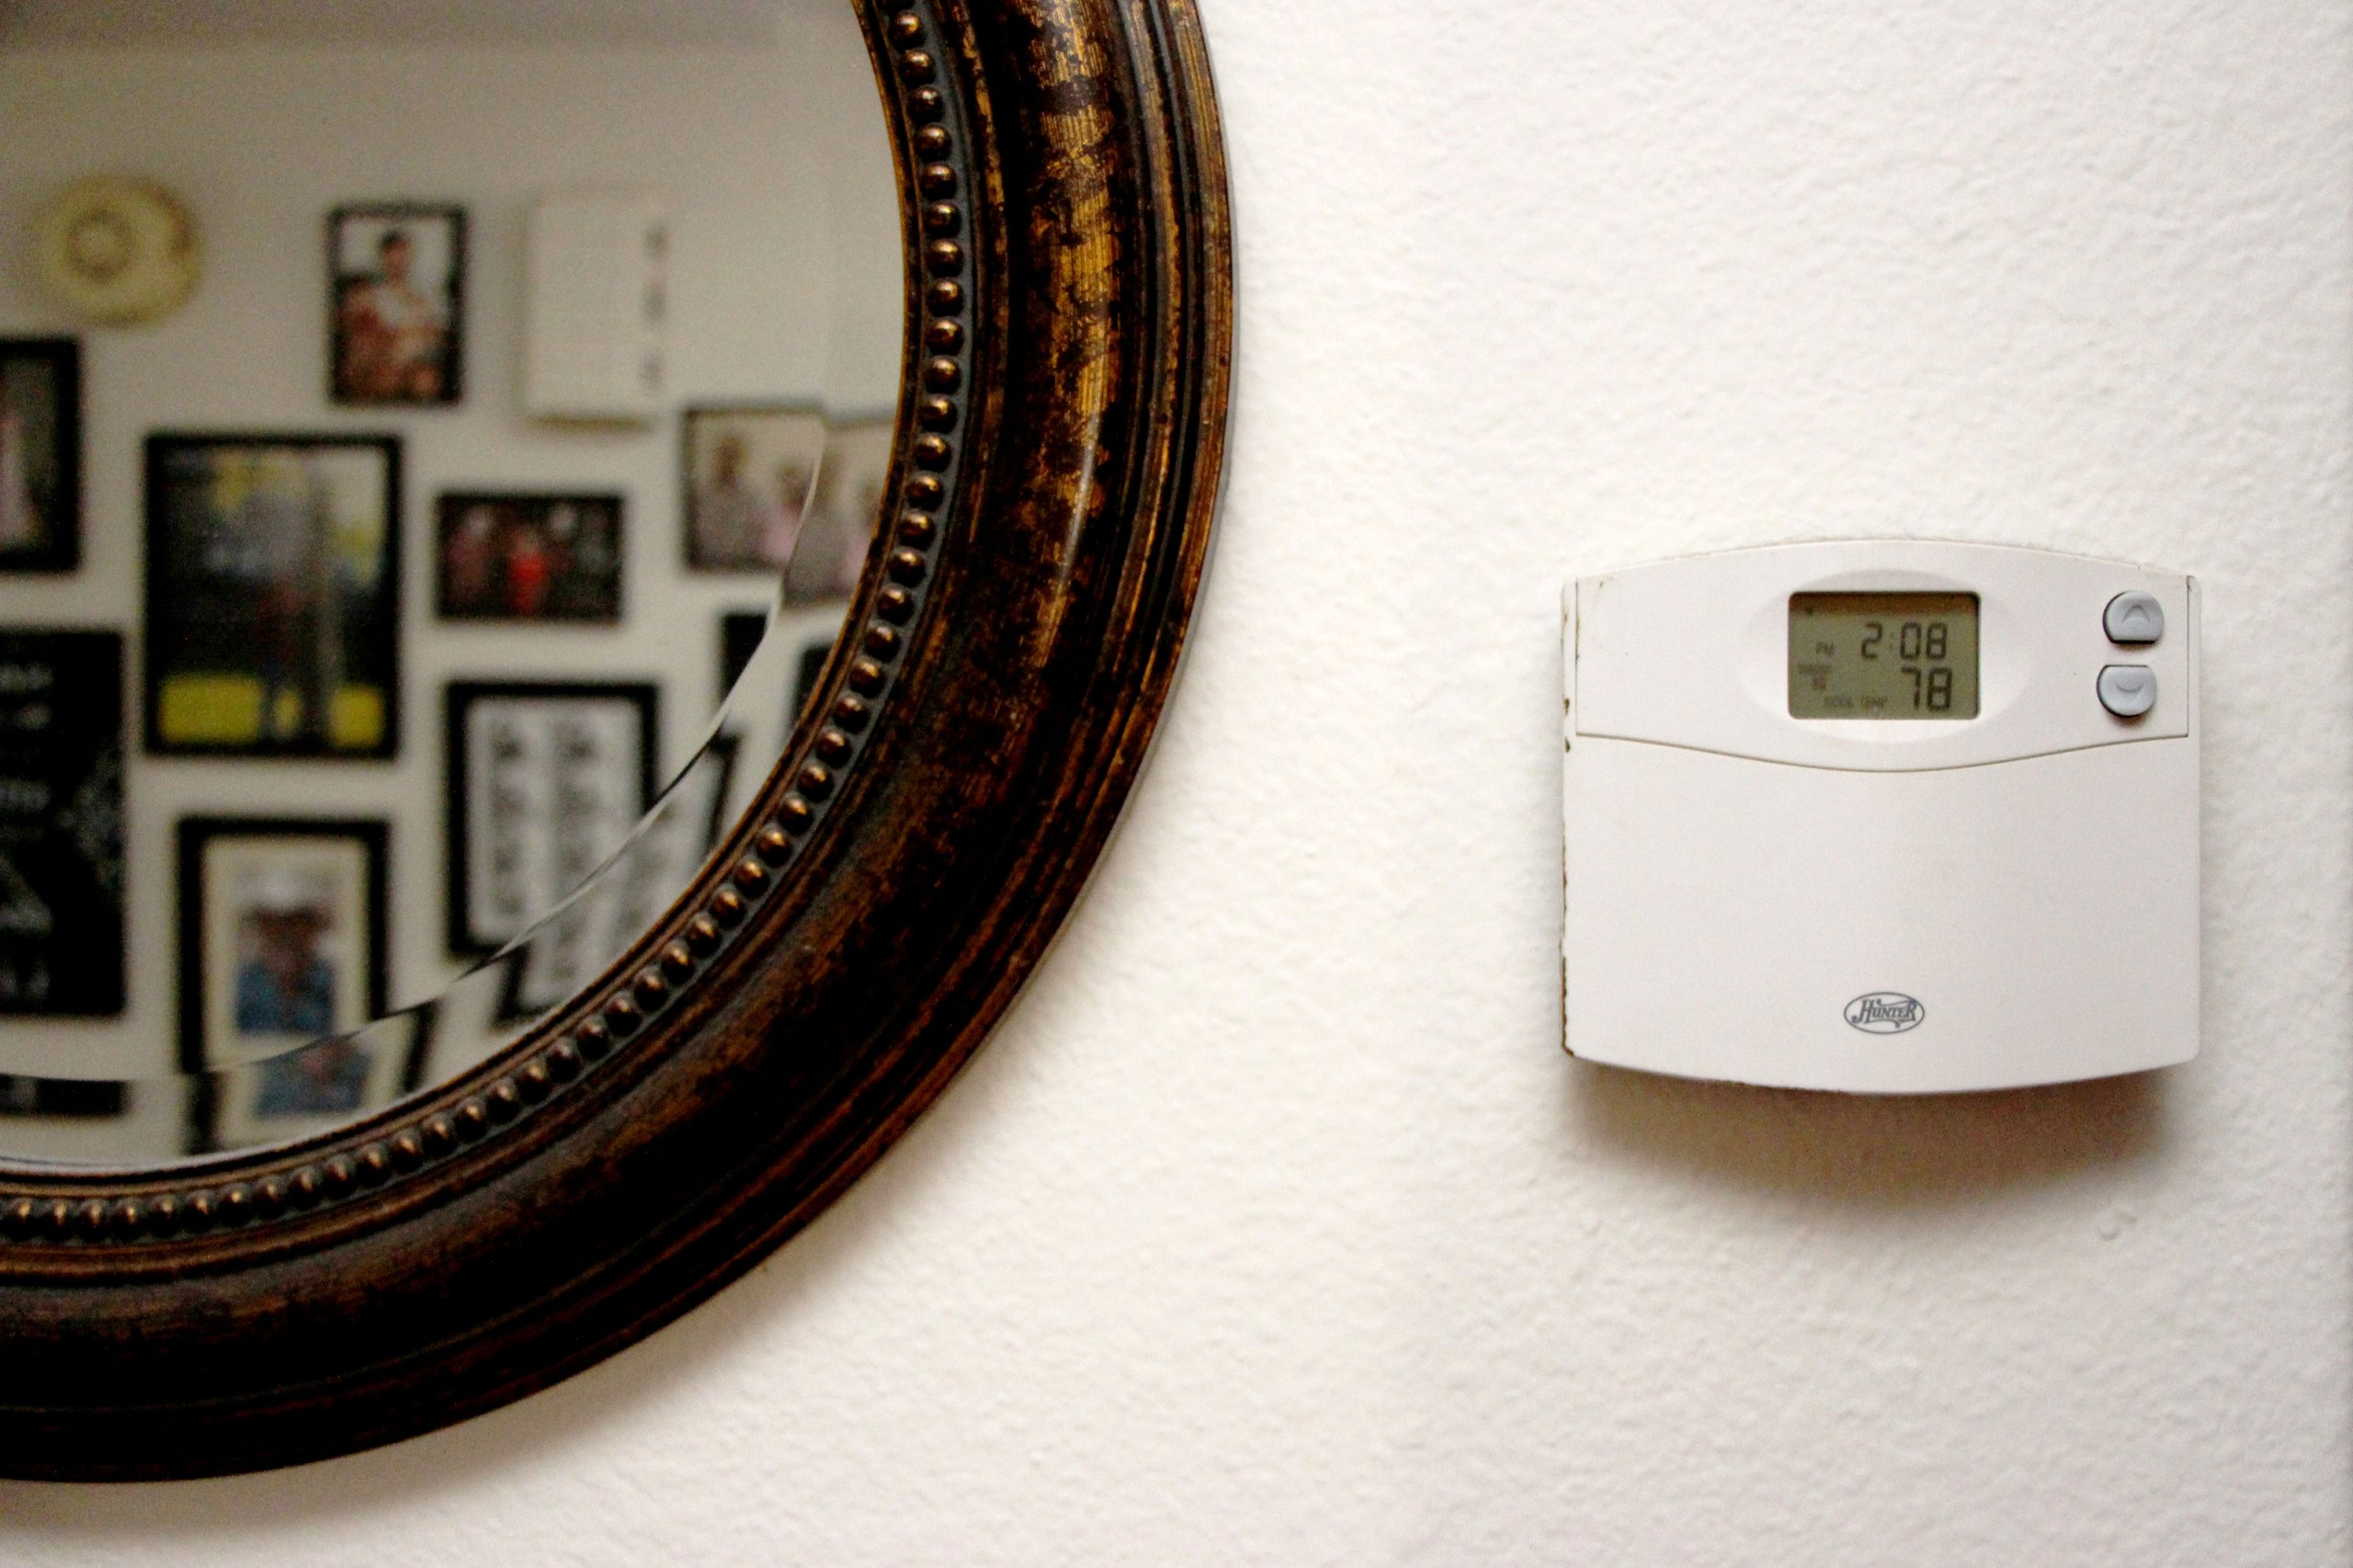 A thermostat on the wall of a home